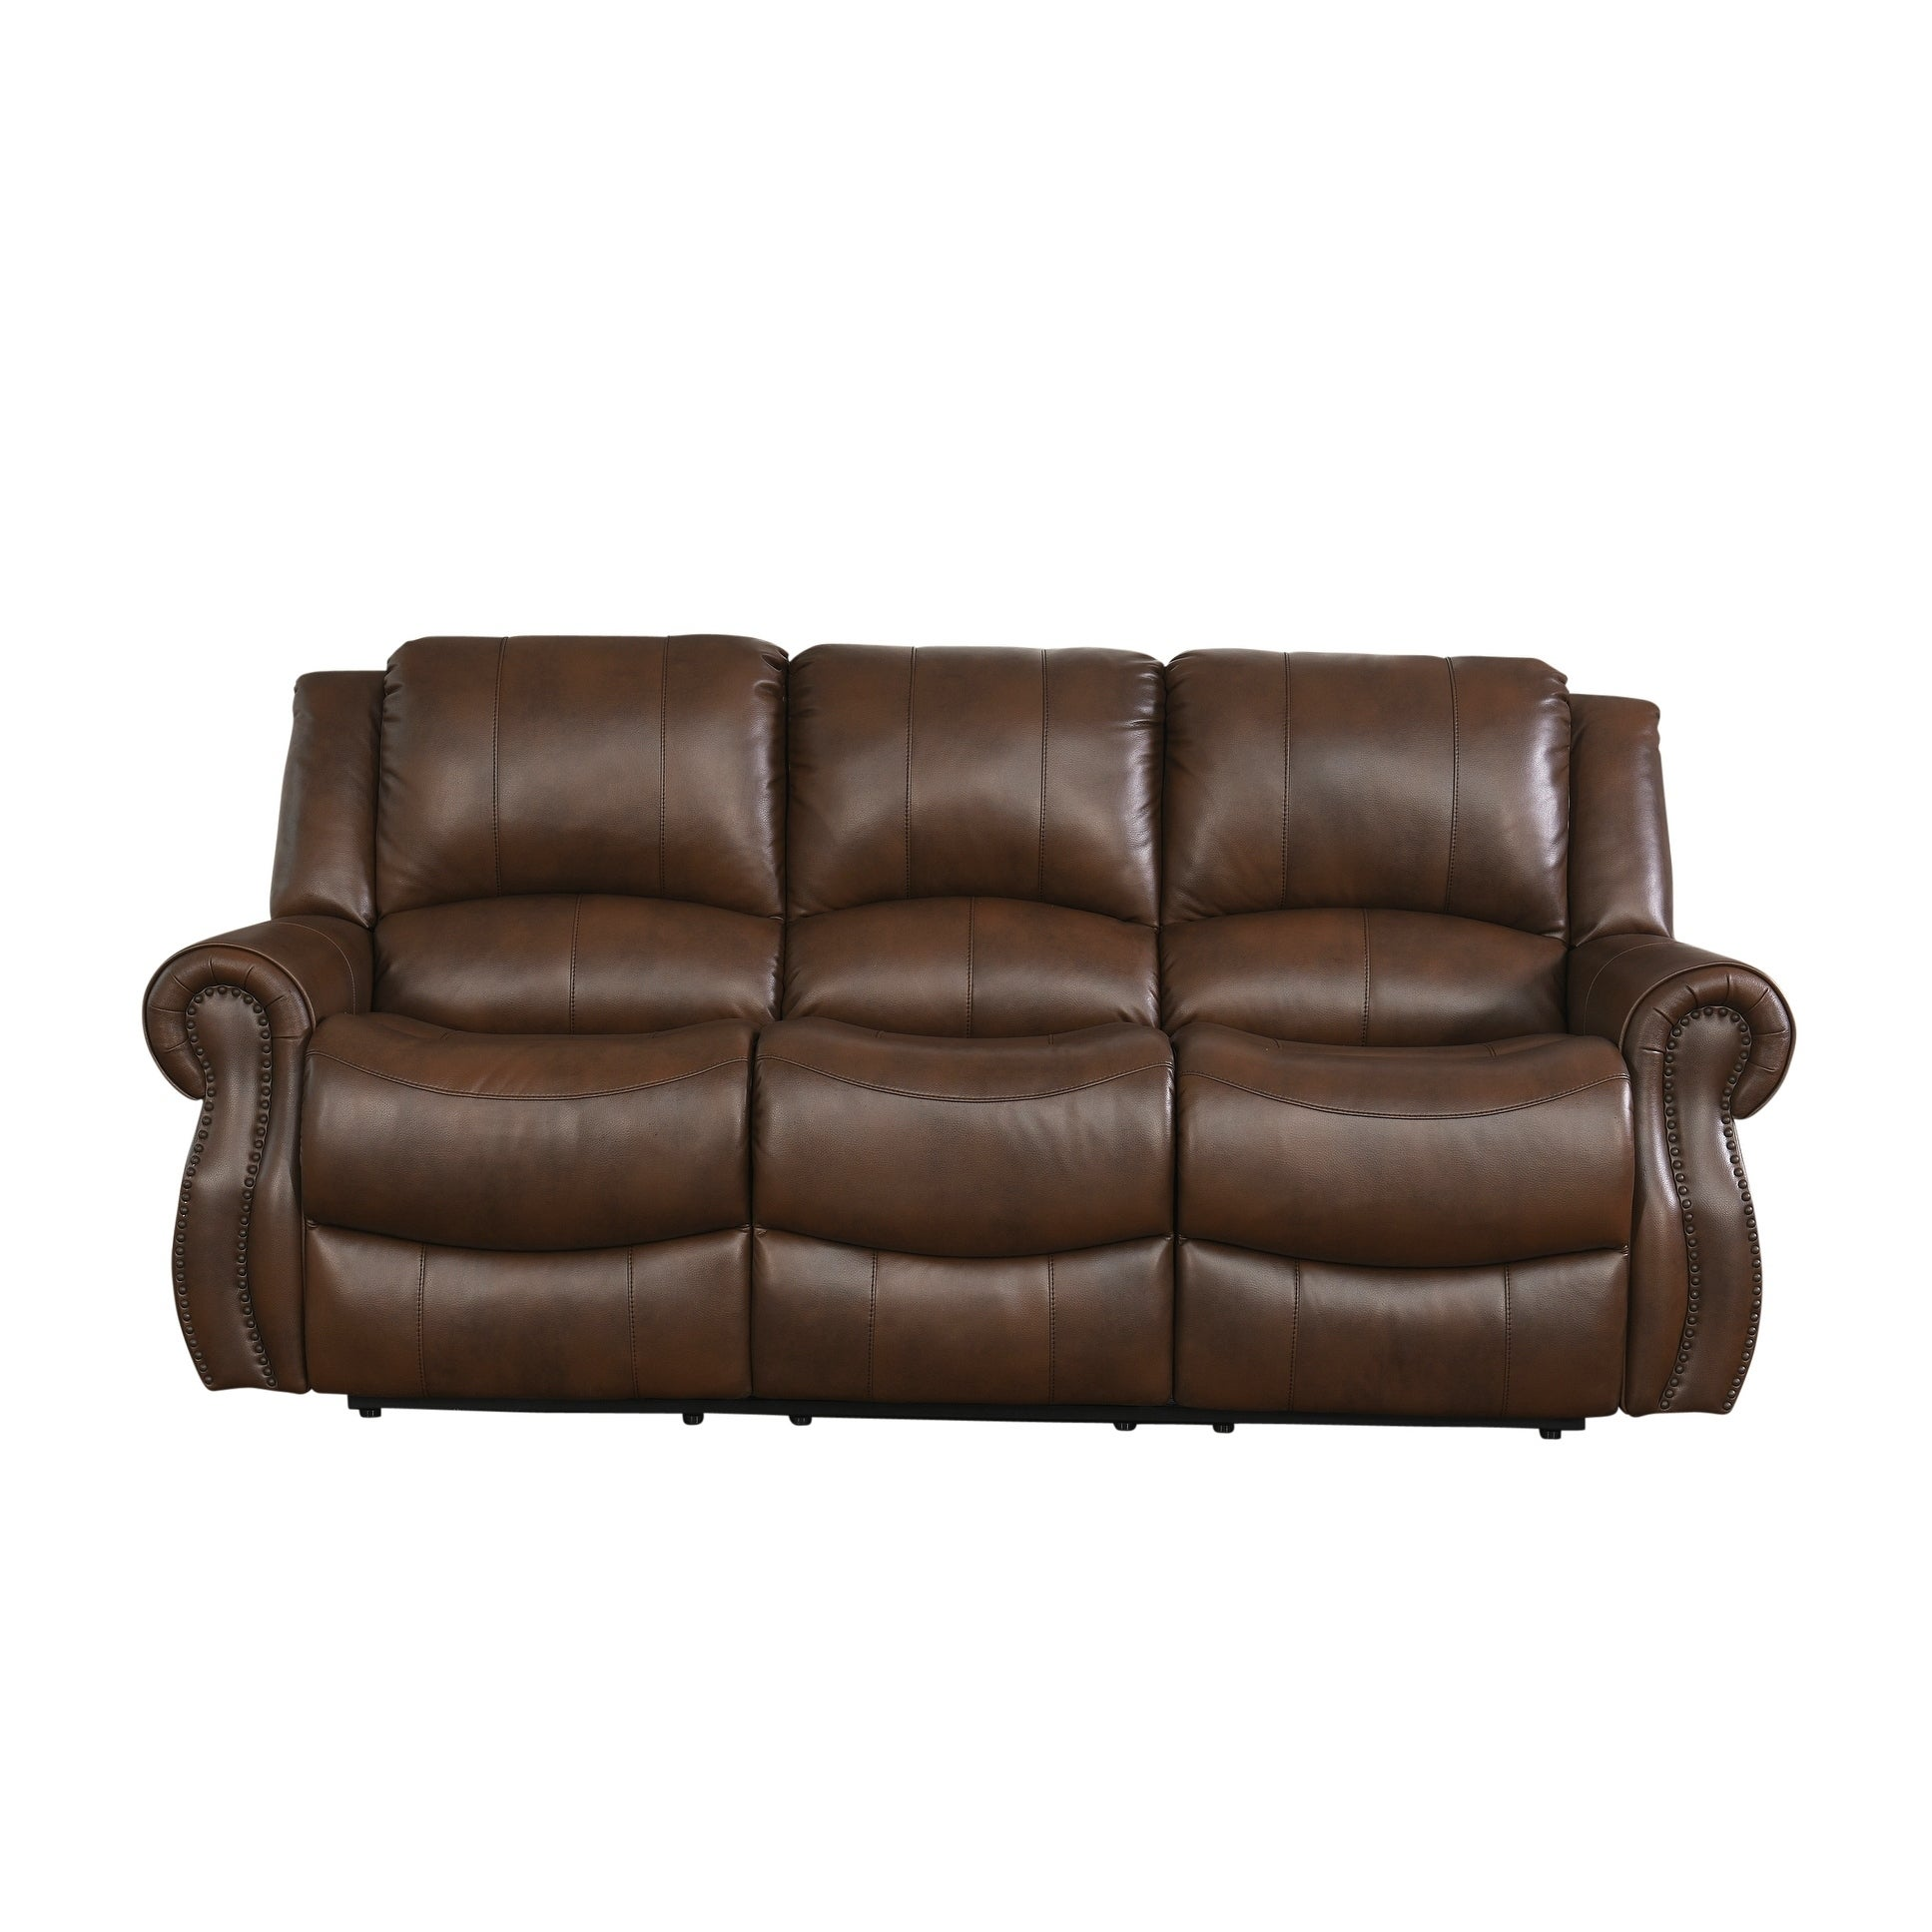 Brown Leather Recliner Sofa Torben Brown Leather Reclining